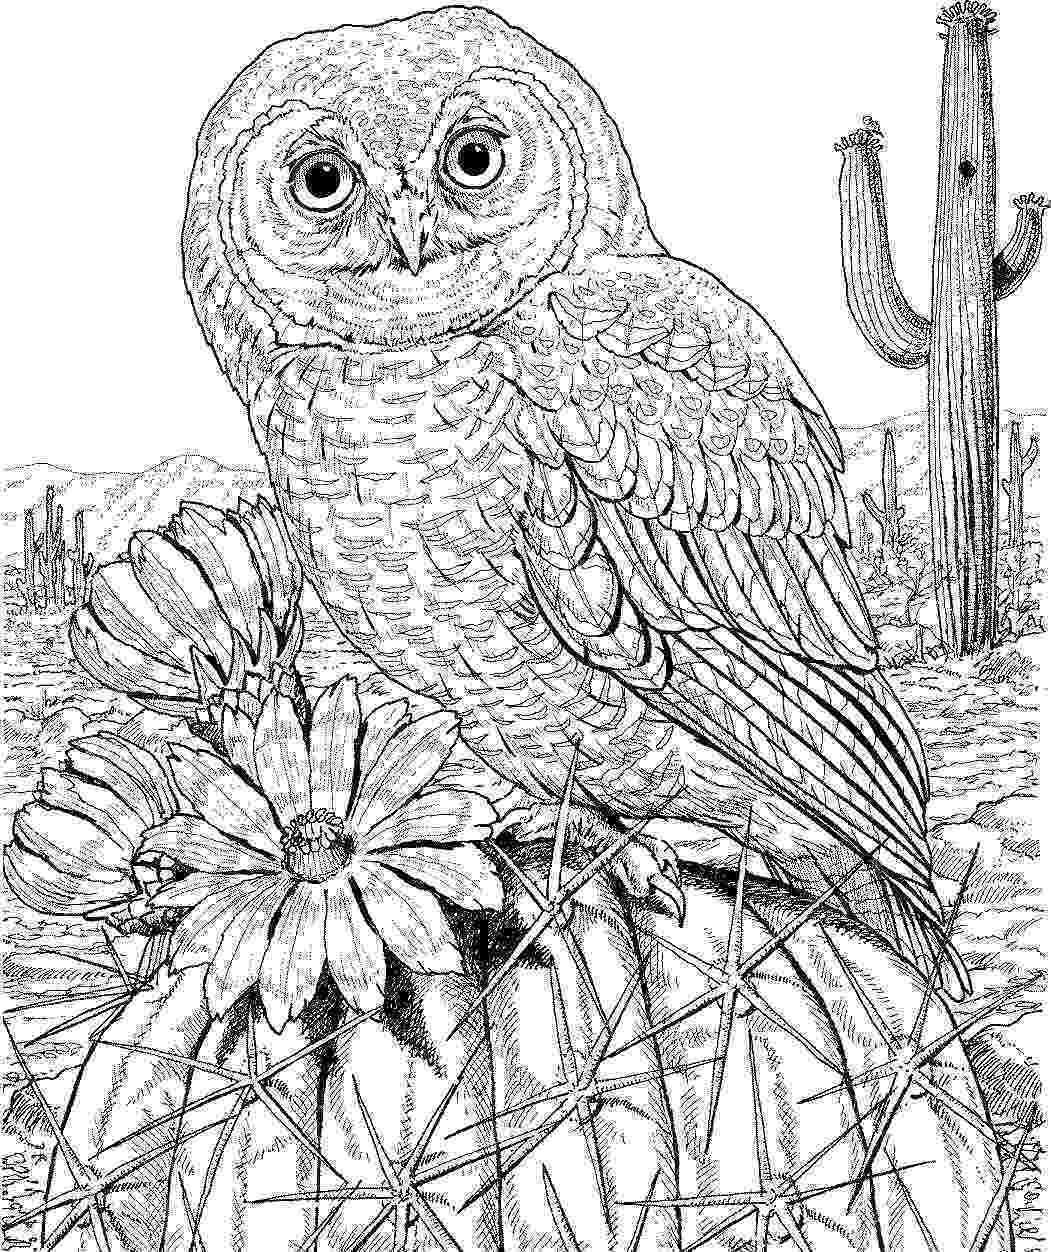 coloring pages for adults with owls 10 difficult owl coloring page for adults owls adults for with coloring pages